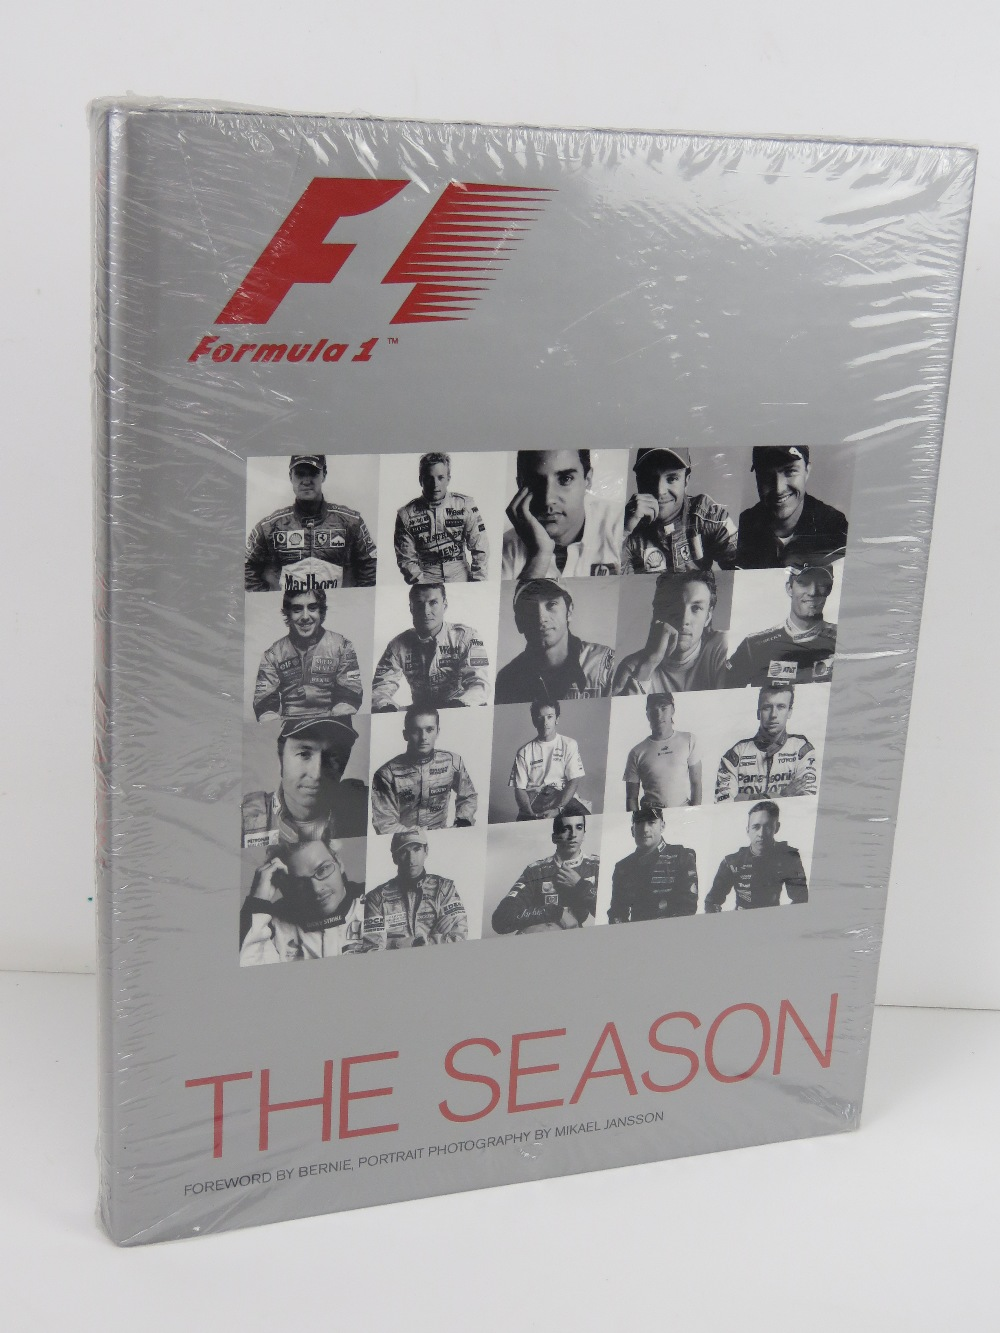 F1 The Season, 2003 edition with foreword by Bernie, portrait photography by Mikael Jansson.